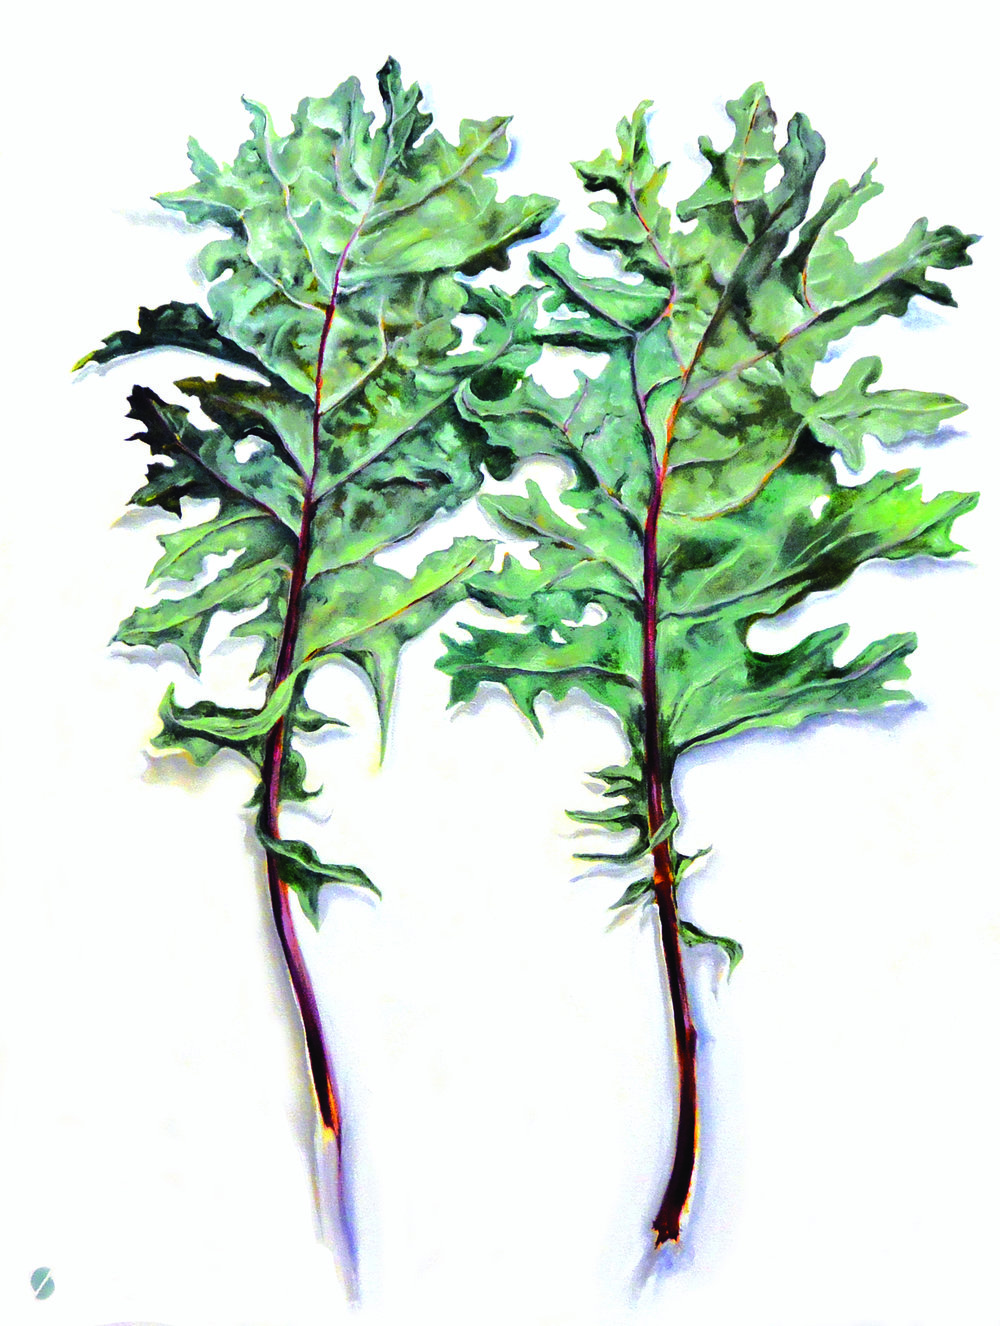 Red Russian Kale Backs , 2014-15, oil on canvas, 48 x 36 inches. Private Collection